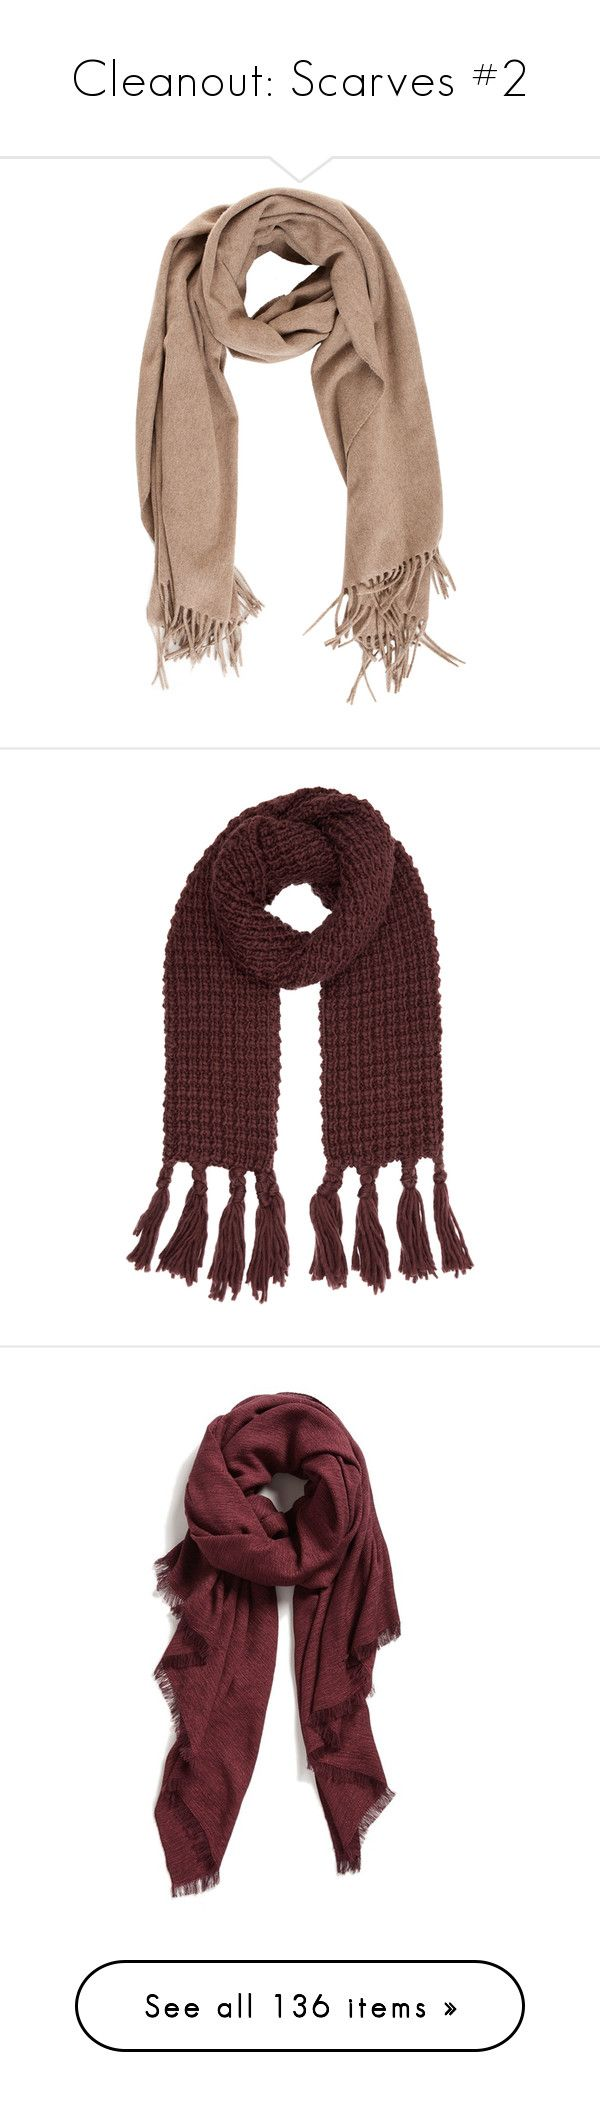 """Cleanout: Scarves #2"" by mscody ❤ liked on Polyvore featuring accessories, scarves, fringe shawl, woolen scarves, shawl scarves, fringe scarves, wrap scarves, tassel scarves, thick knit scarves and accessorize scarves"